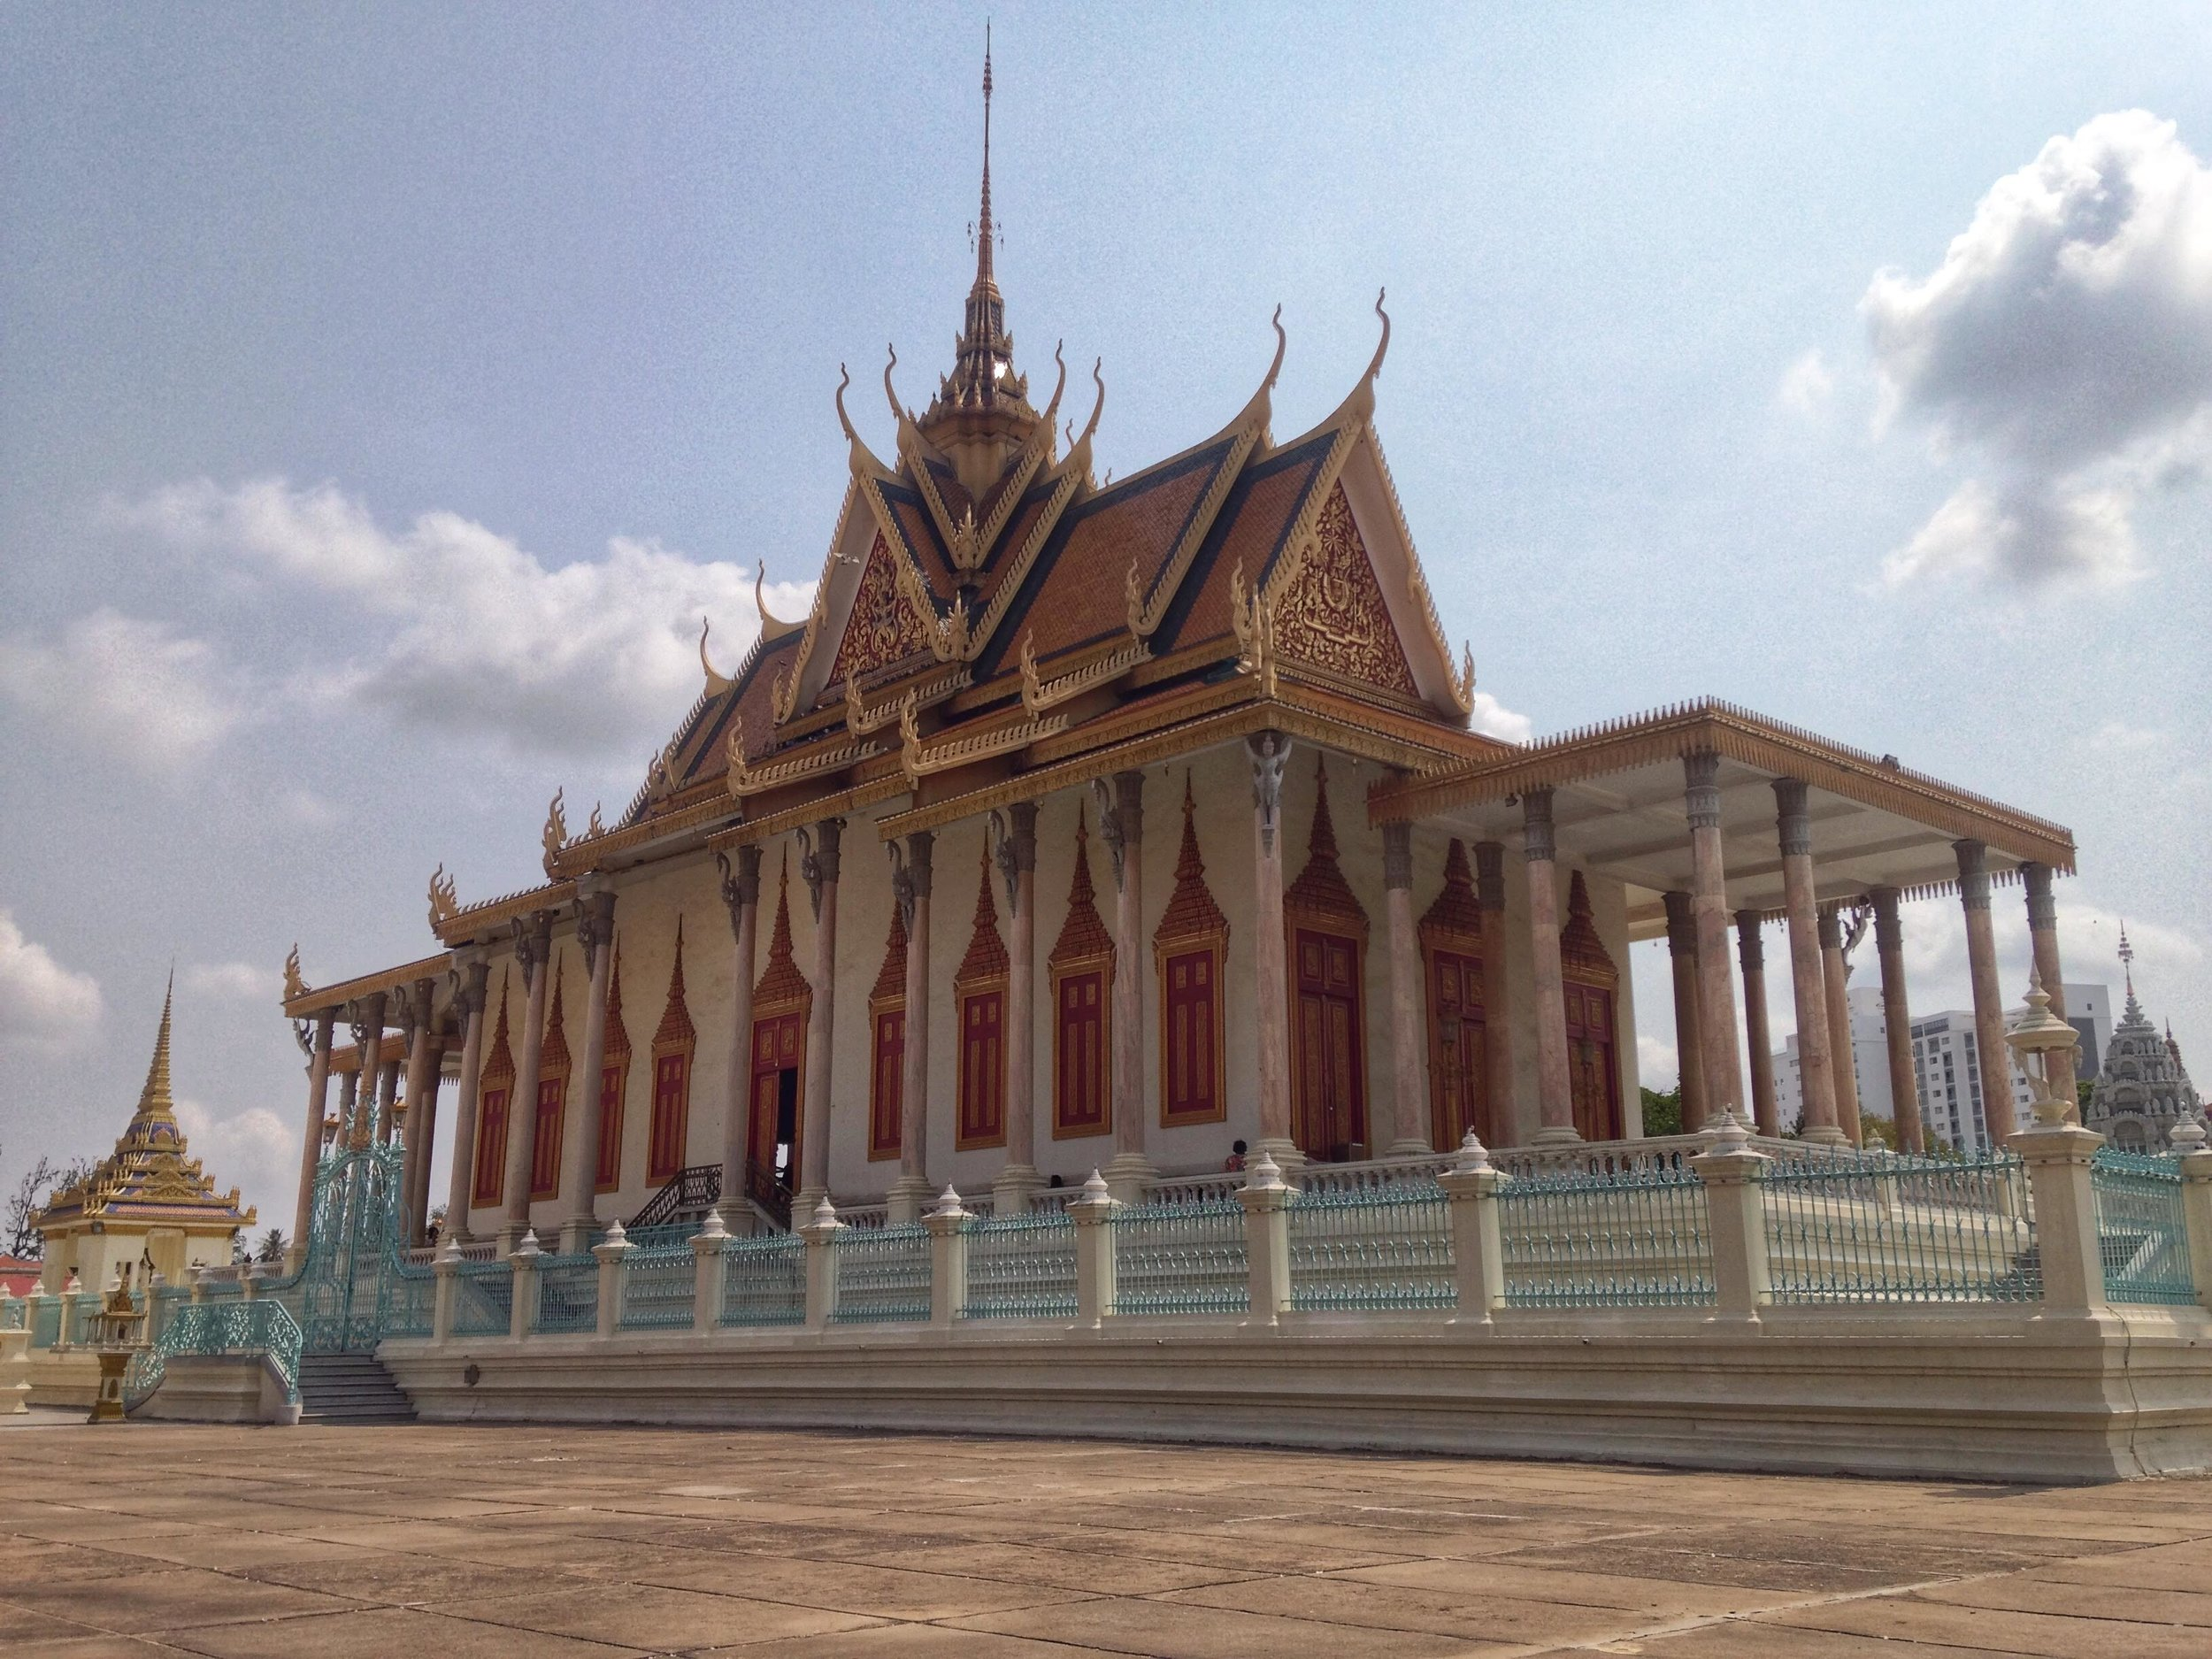 The Silver Pagoda is the most important royal temple in the Kingdom of Cambodia.